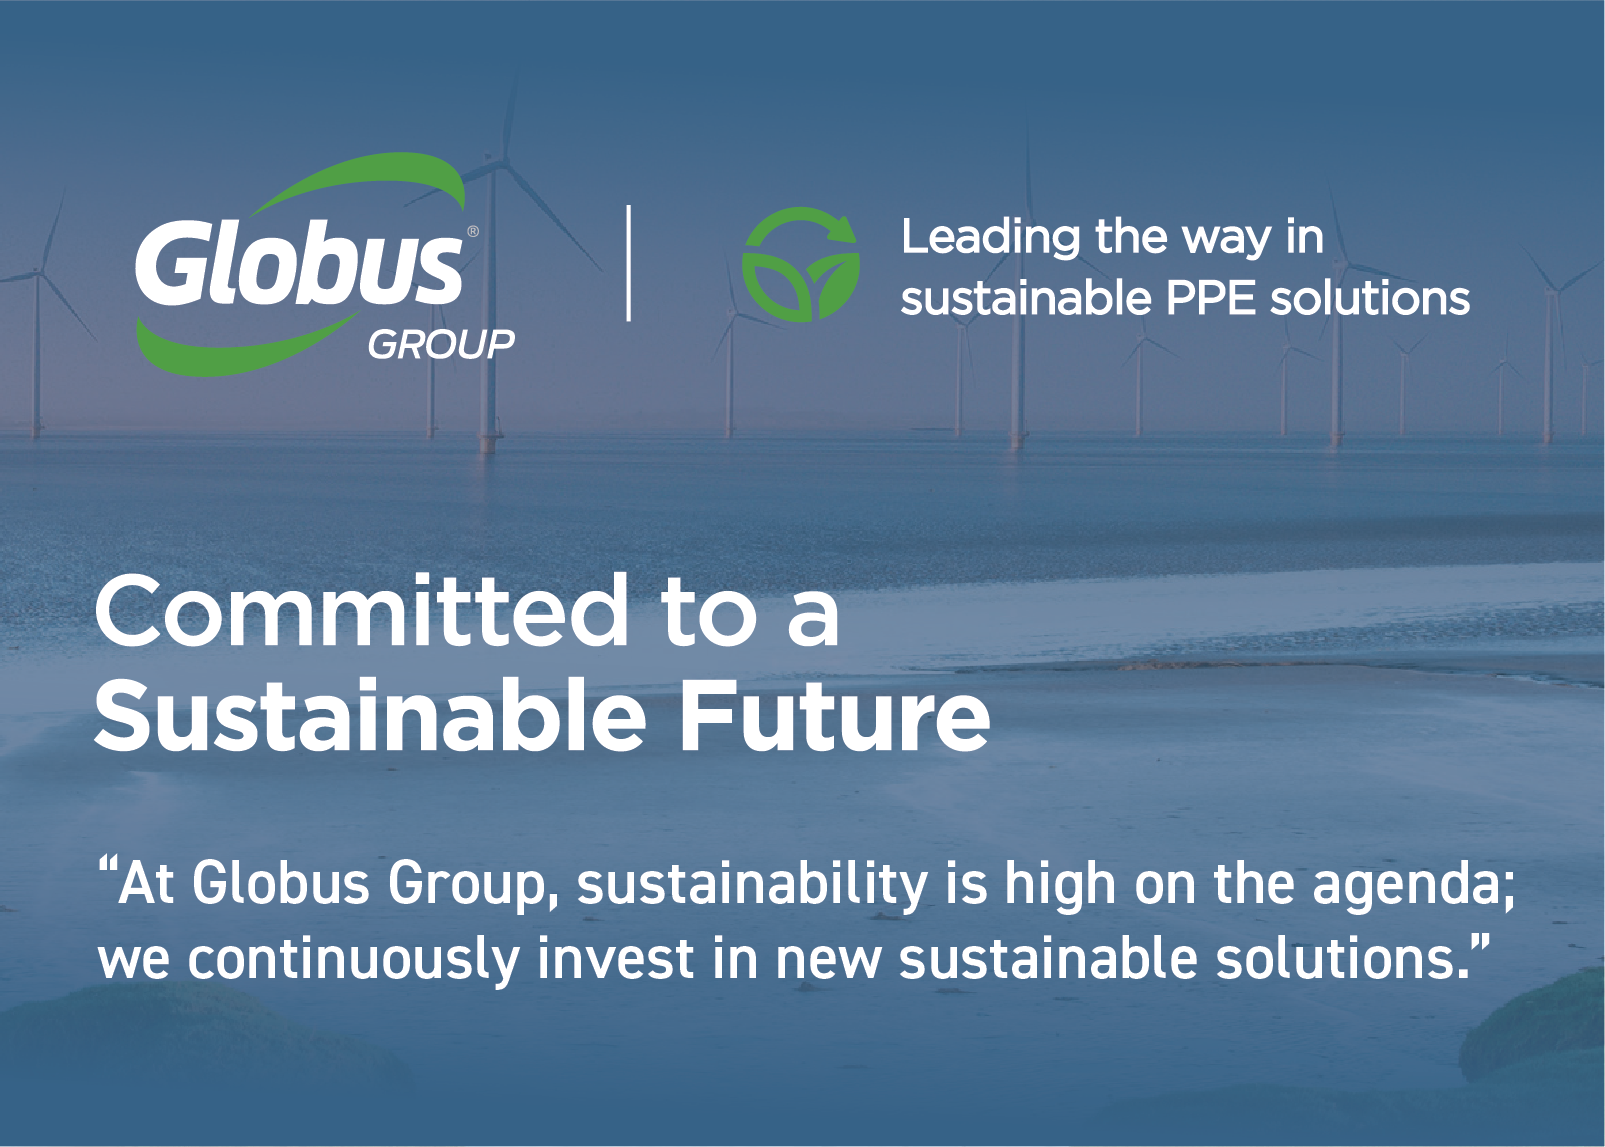 Globus Group Committed to a sustainable future